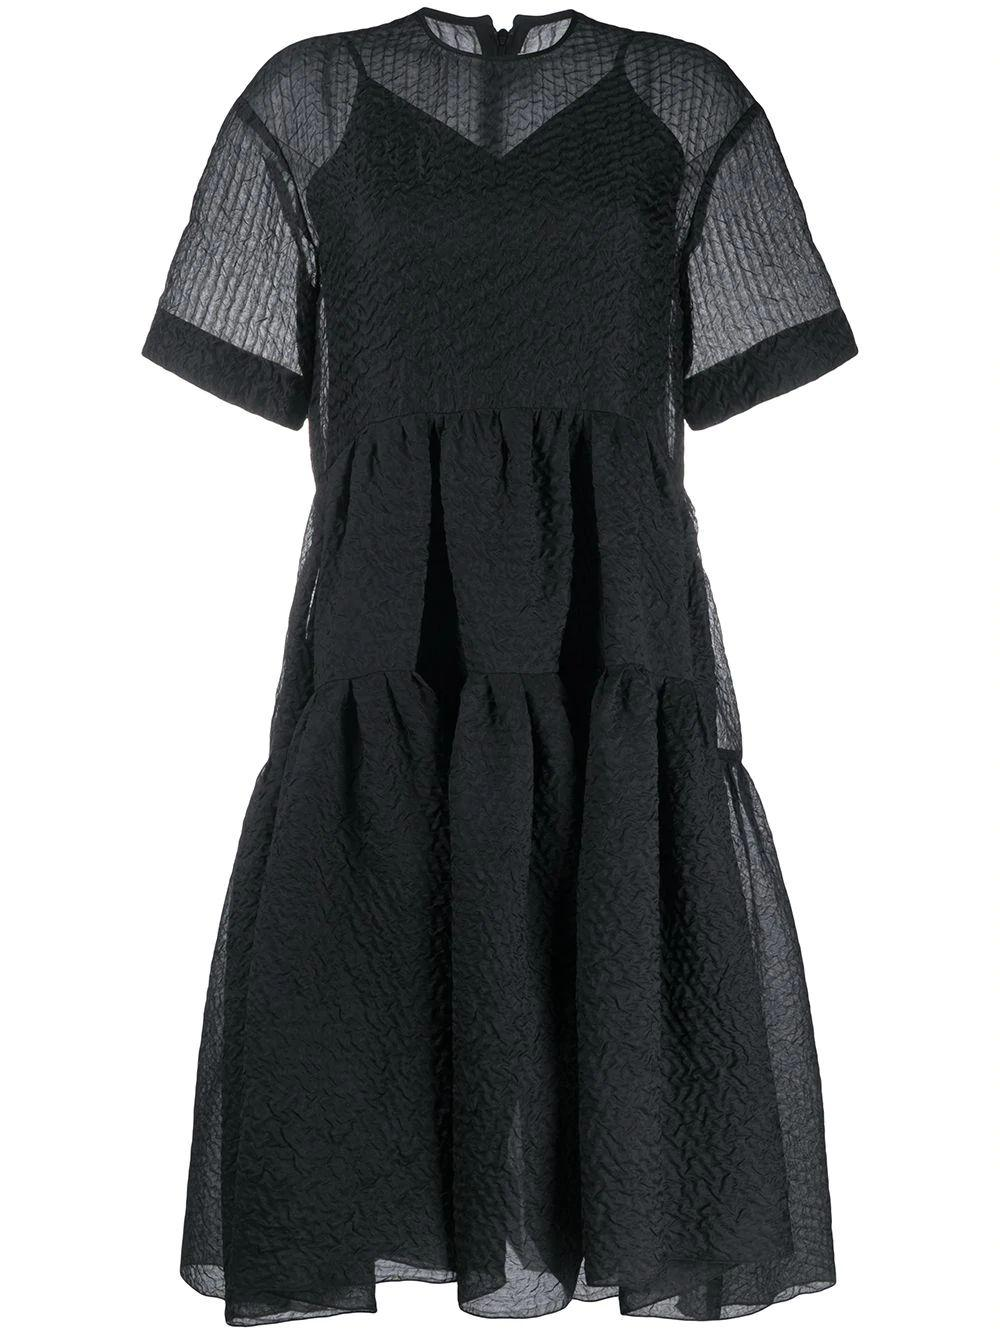 Elbow Sleeve Exaggerated Cocoon Dress Item # 2320WDR001612A